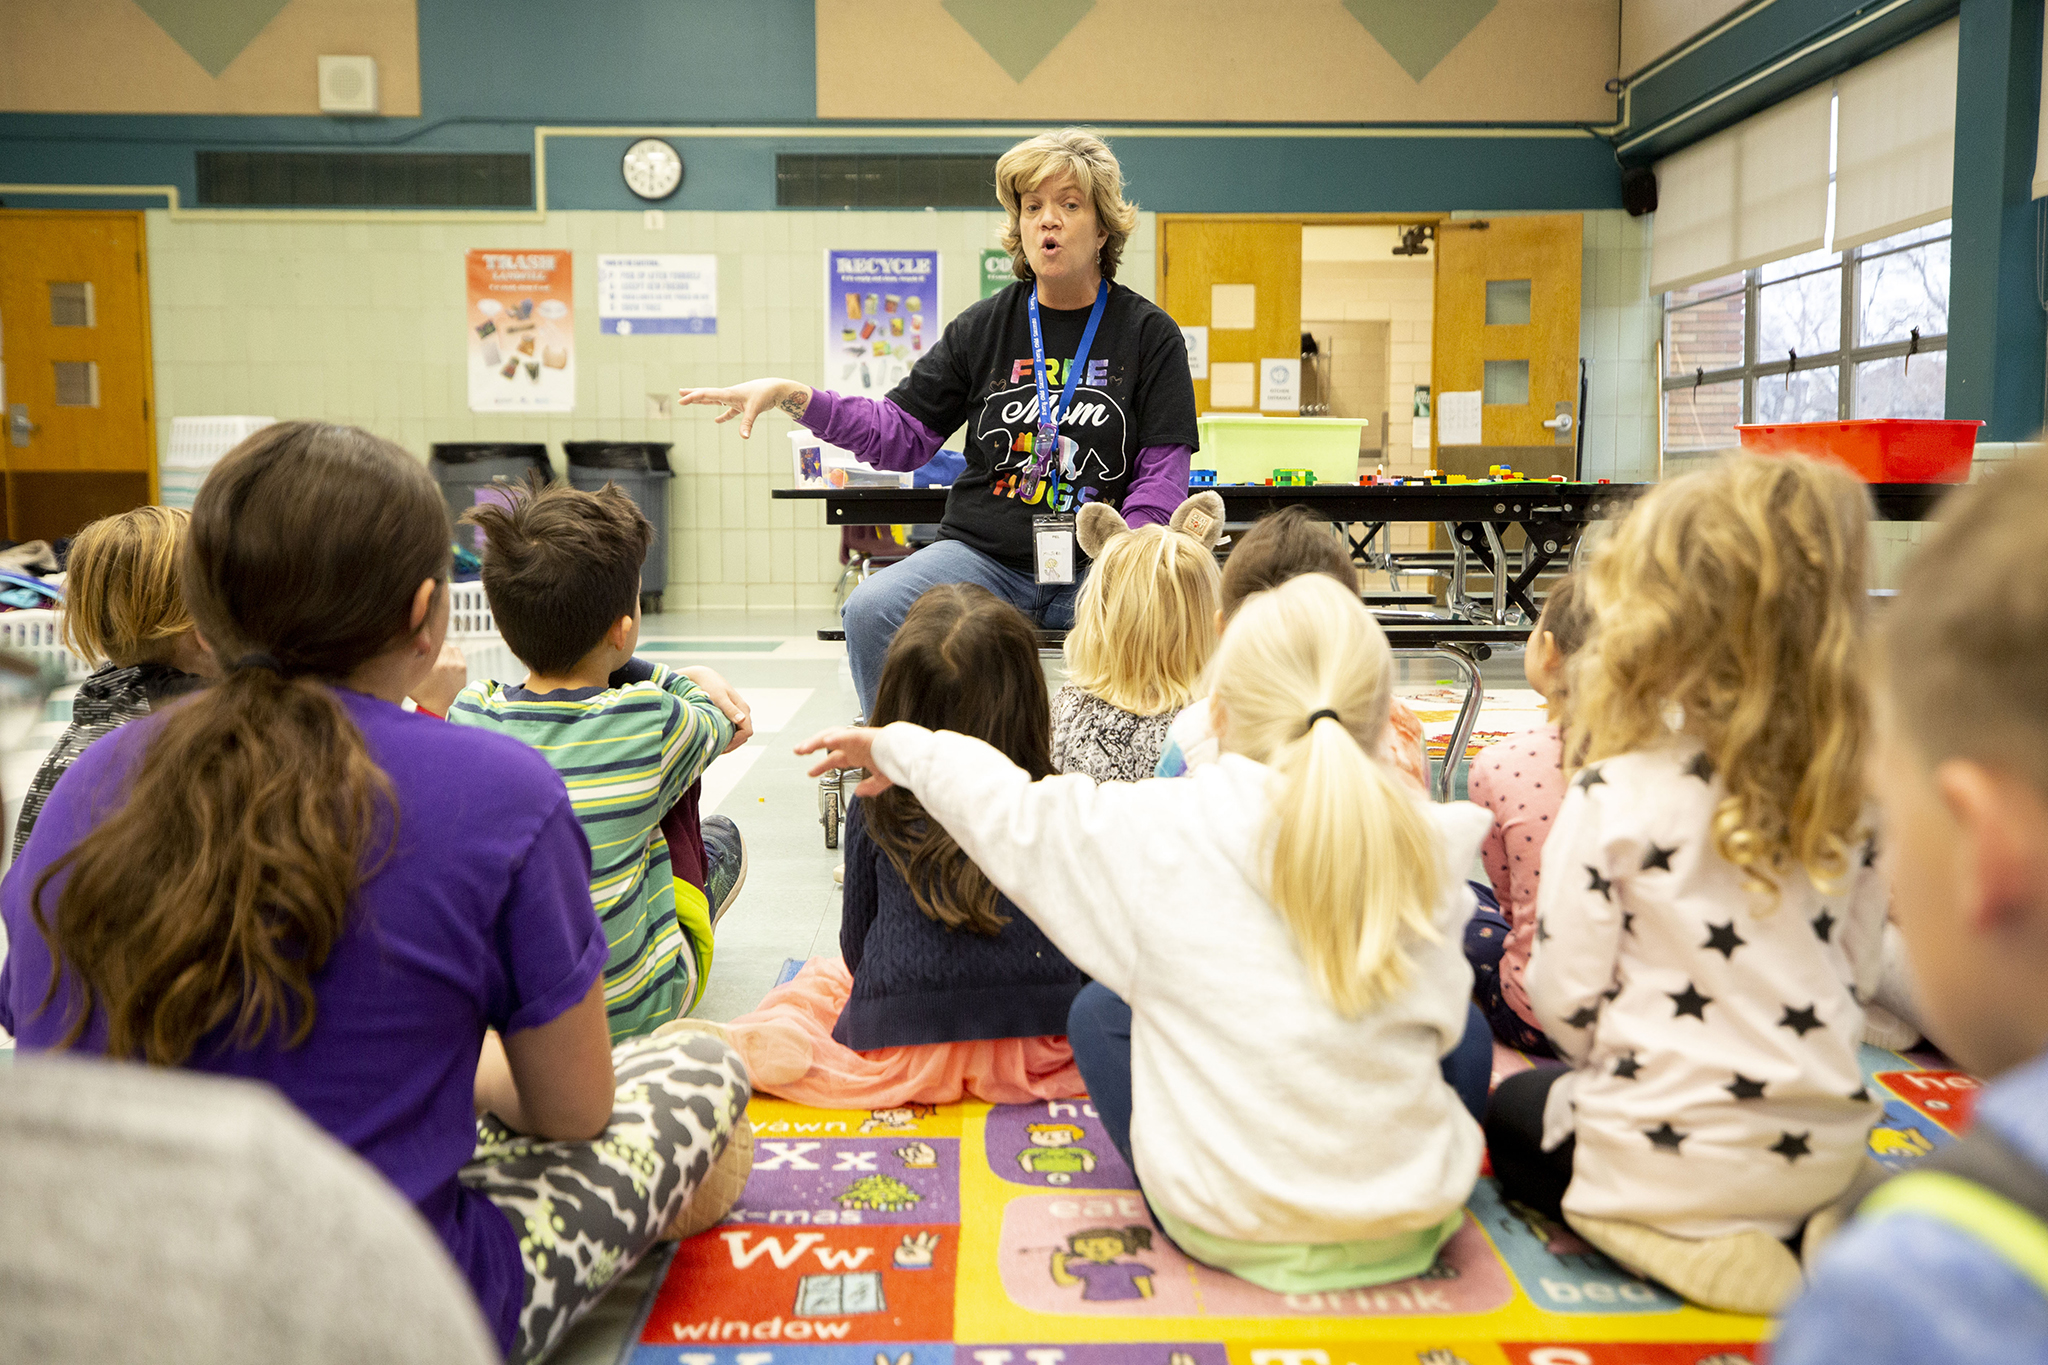 An after-school program supervisor talks to children seated on a classroom rug.